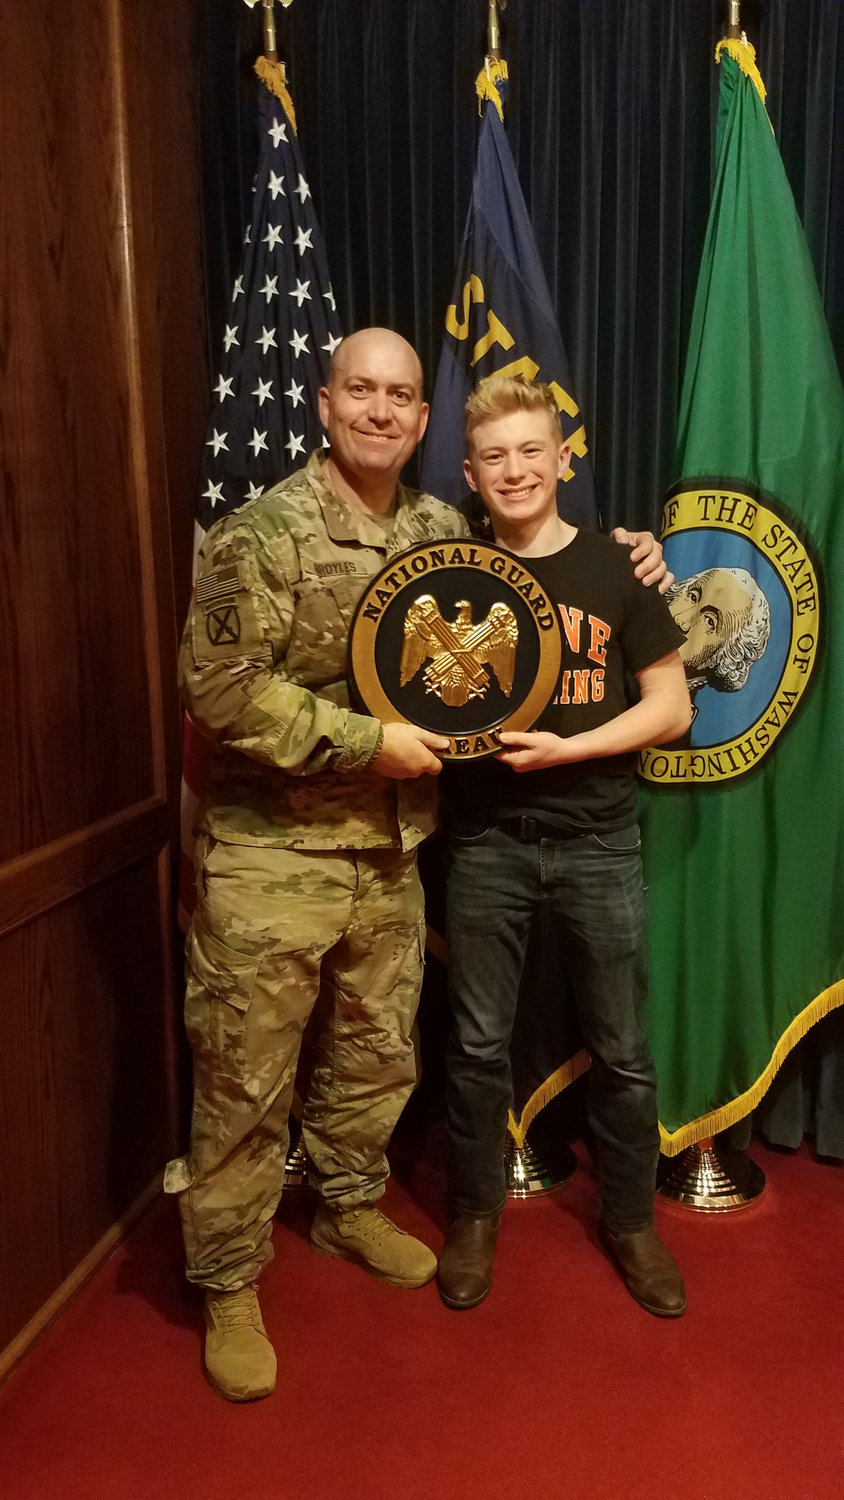 Jeb Broyles was recently sworn into the same battalion as his father, LTC Craig Broyles, who commands the 3rd Battalion 161 Infantry Regiment of the Washington Army National Guard.